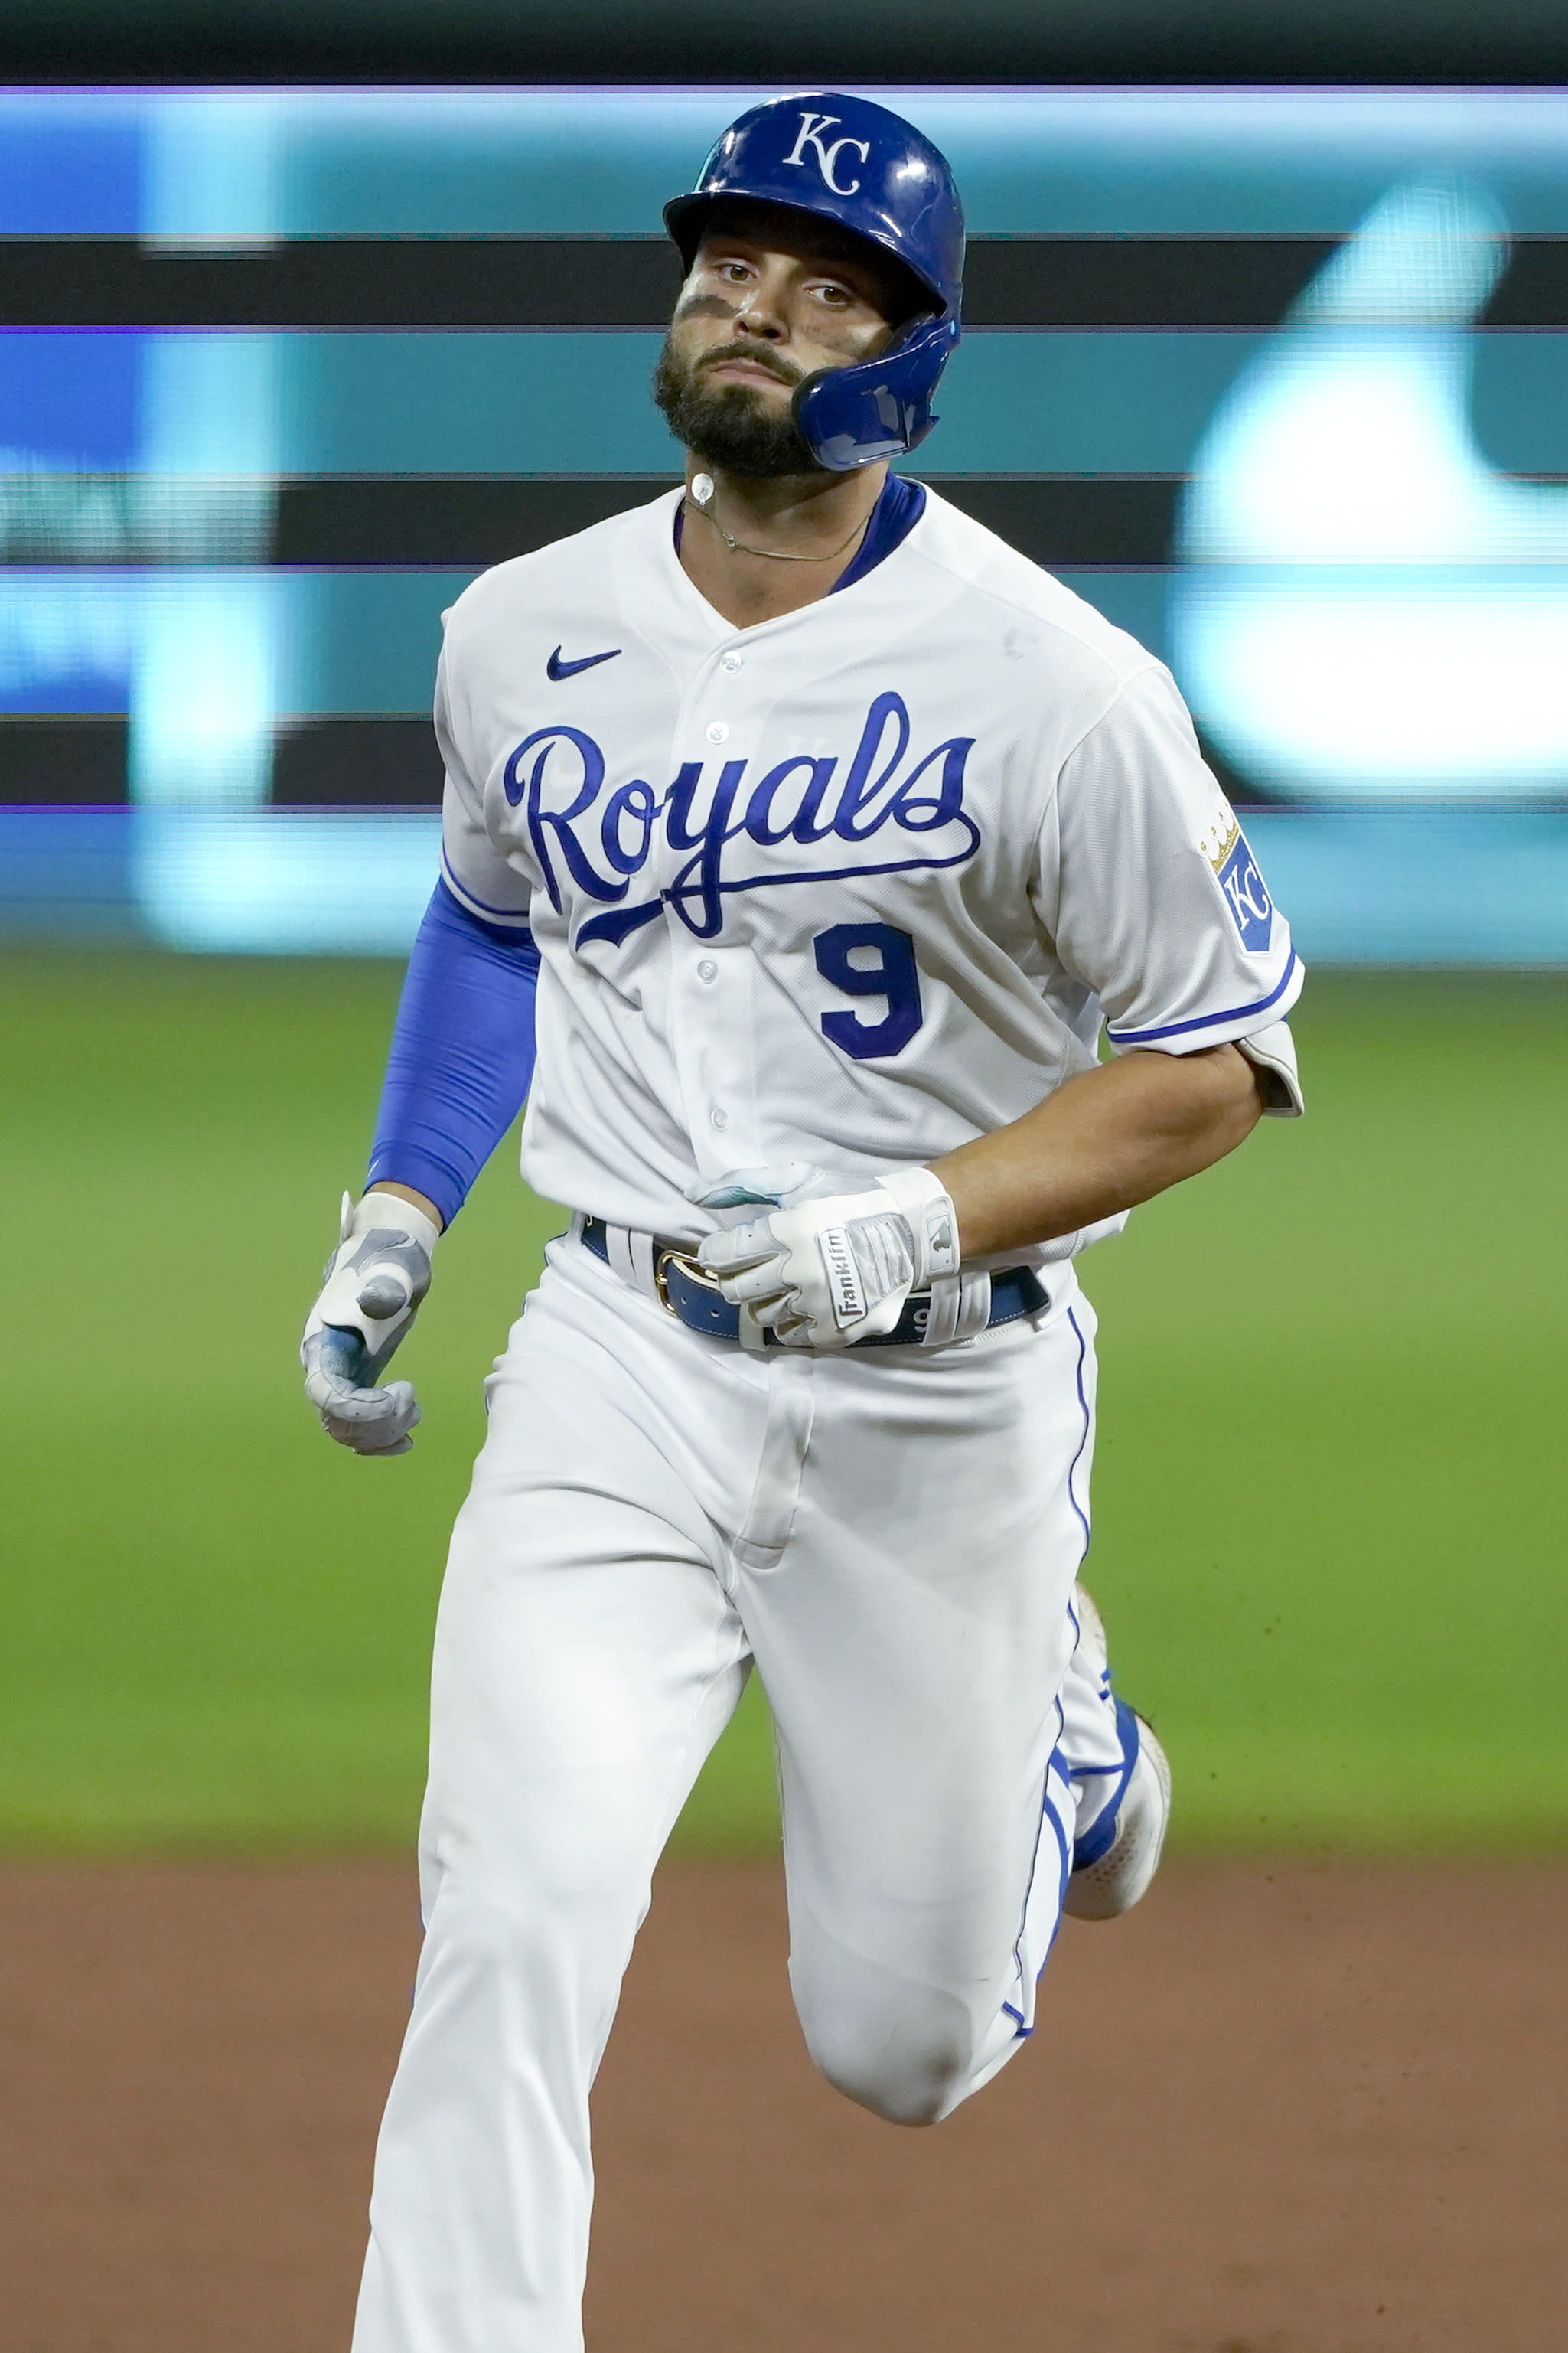 Kansas City Royals' Ryan McBroom rounds the bases after hitting a solo home run during the sixth inning of a baseball game against the Chicago White Sox Friday, July 31, 2020, in Kansas City, Mo. (AP Photo/Charlie Riedel)